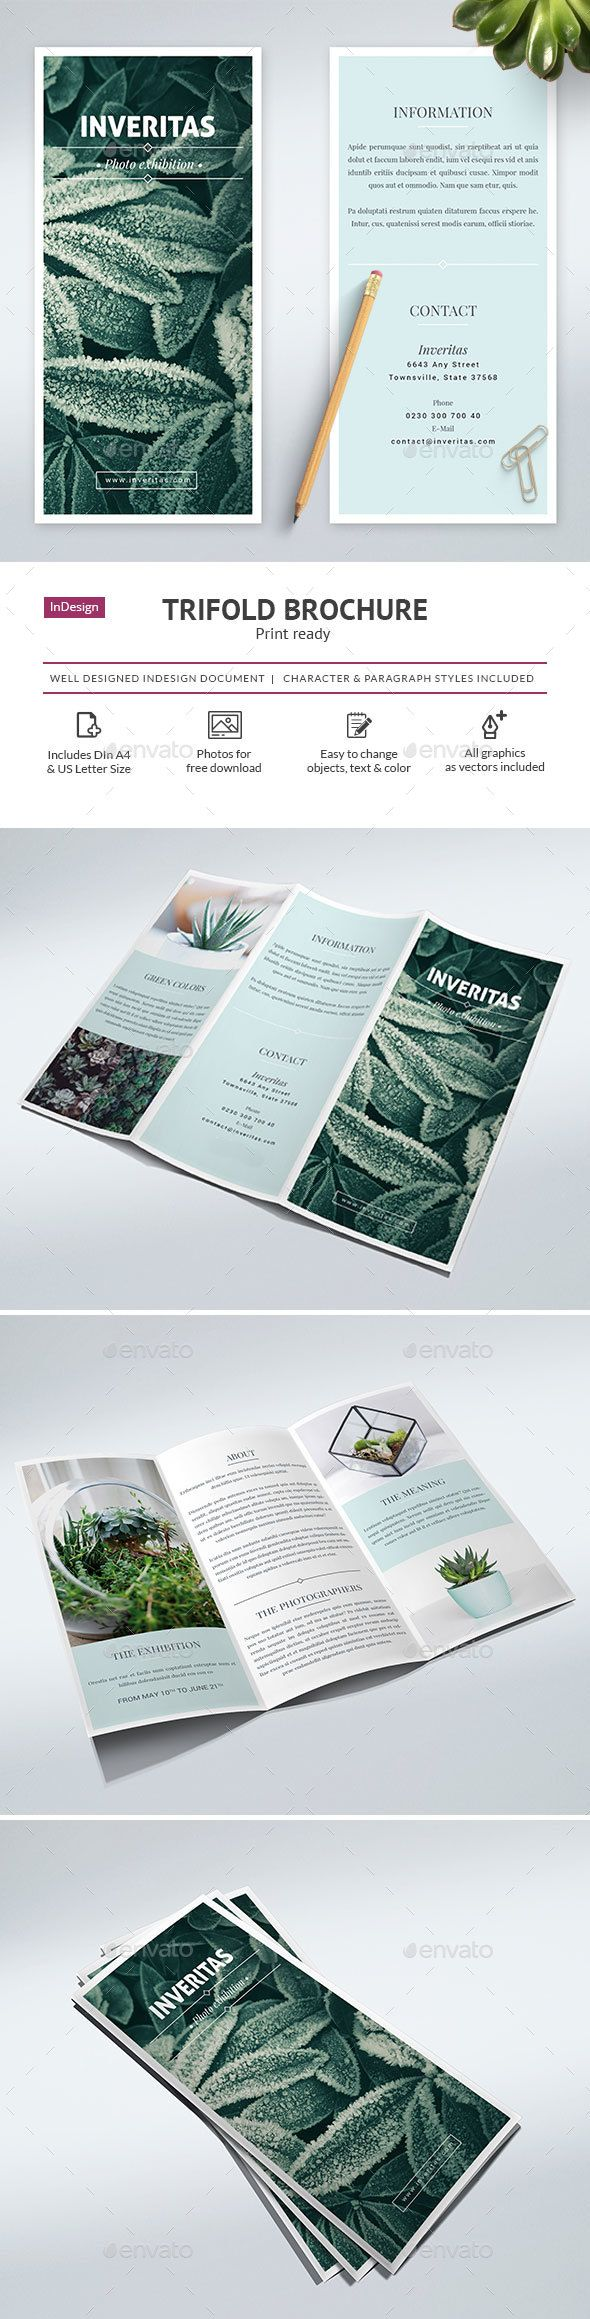 Clean Trifold Brochure Vol. 1